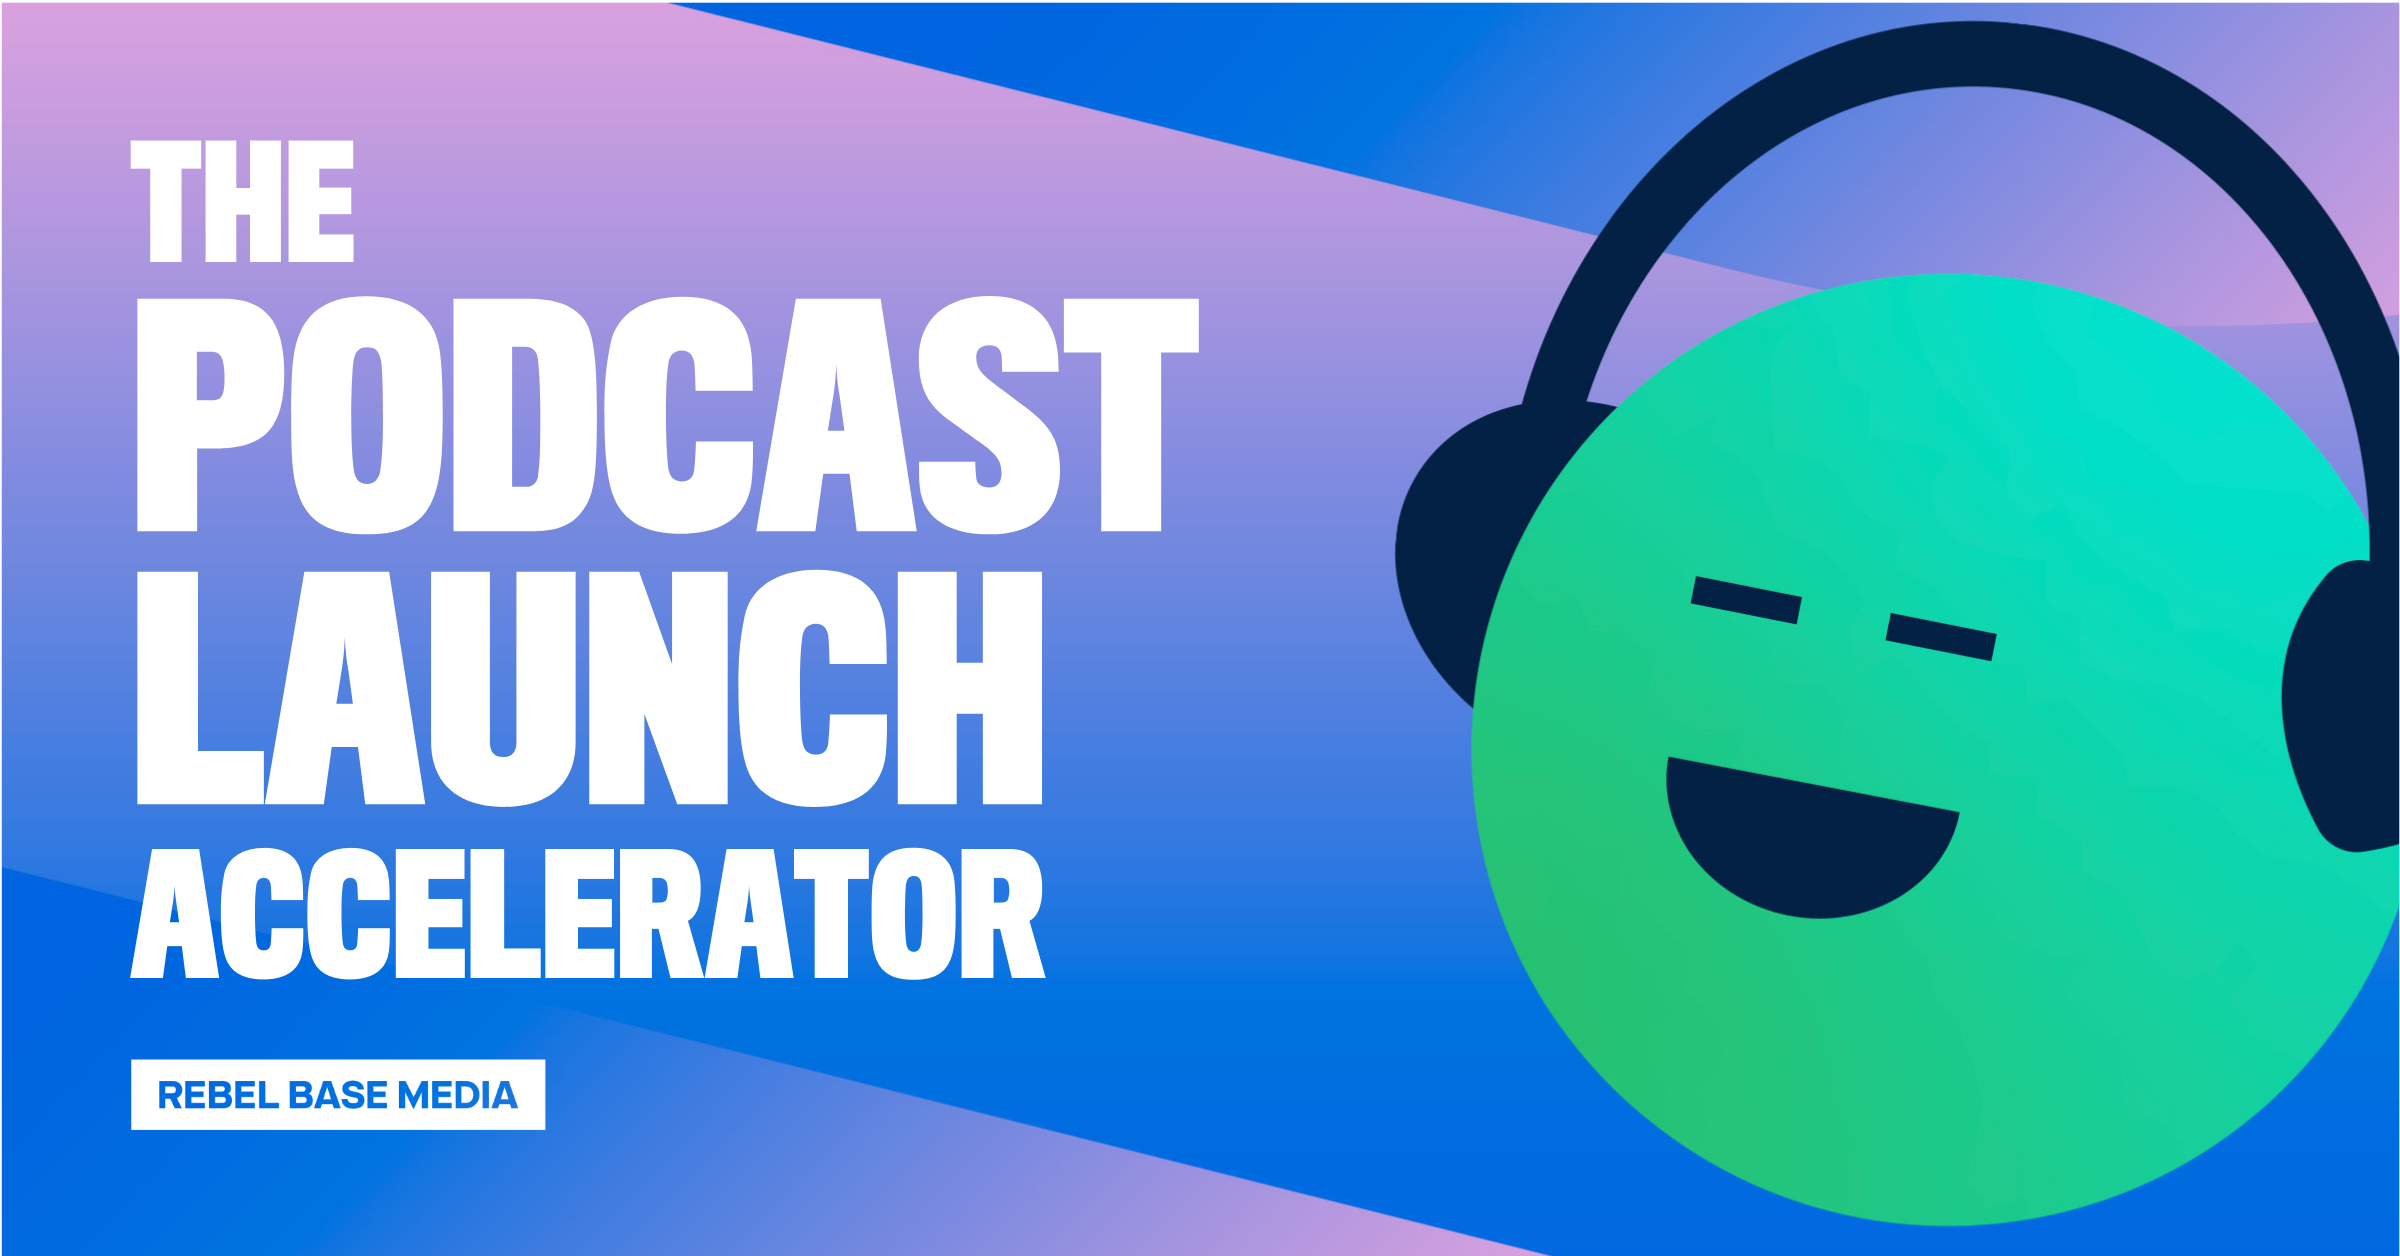 An image showing a happy face with the text 'The Podcast Launch Accelerator from Rebel Base Media'